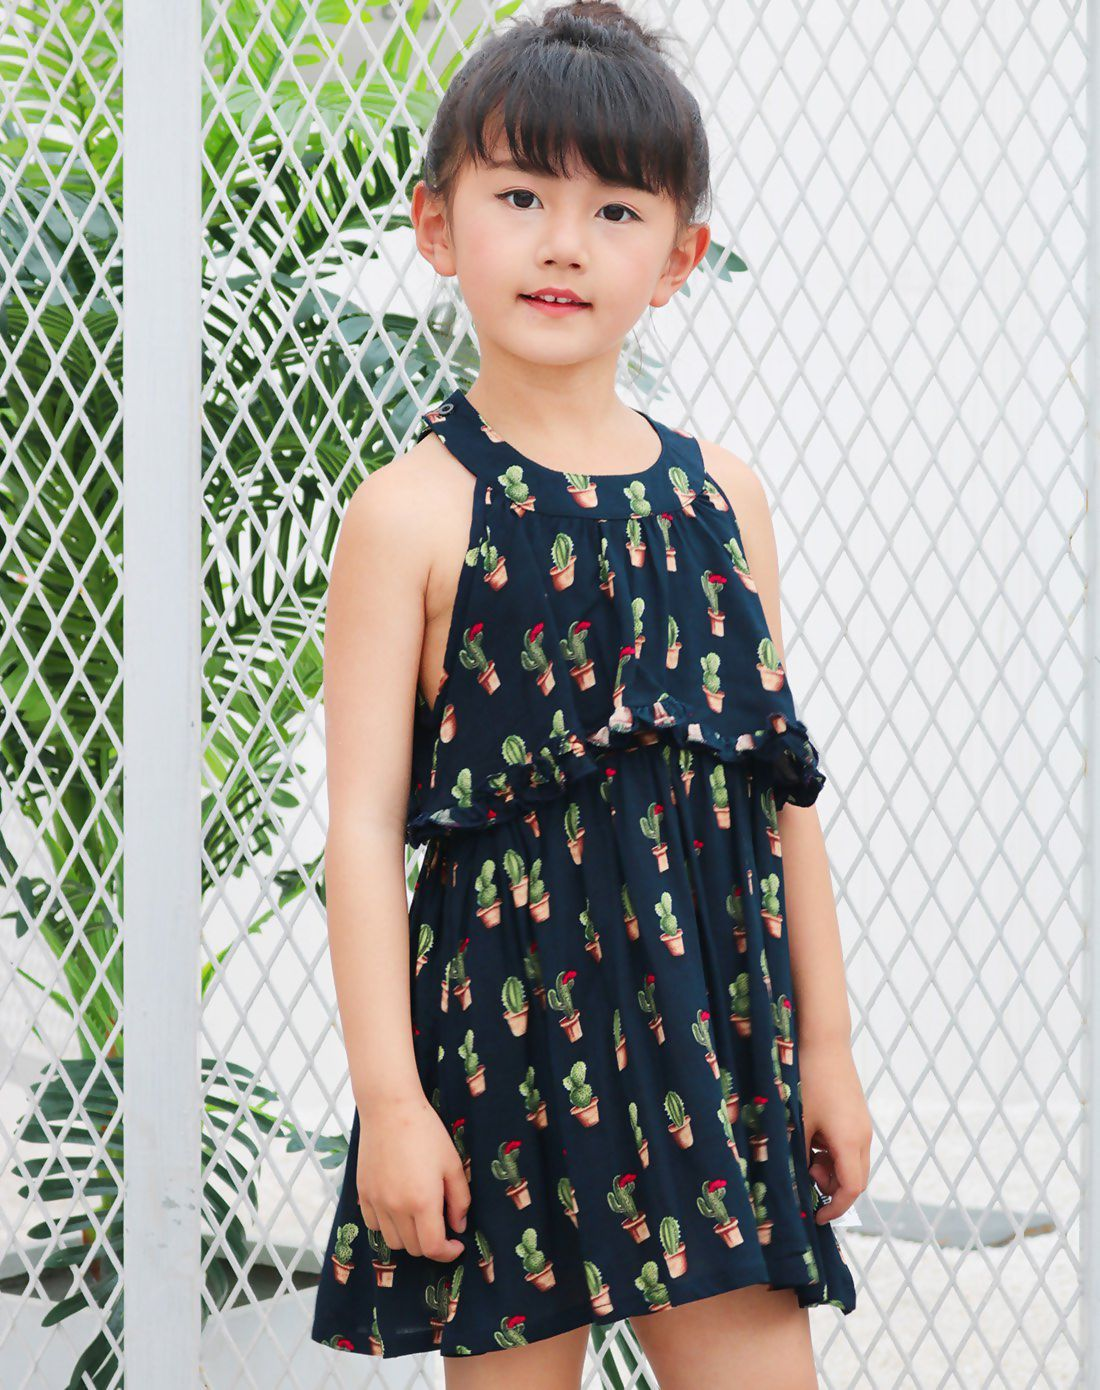 a720779da351  VIPshop Dark Blue Summer Floral Vest Girls  Dresses ❤ Get more outfit  ideas and style inspiration from fashion designers at VIP.com.